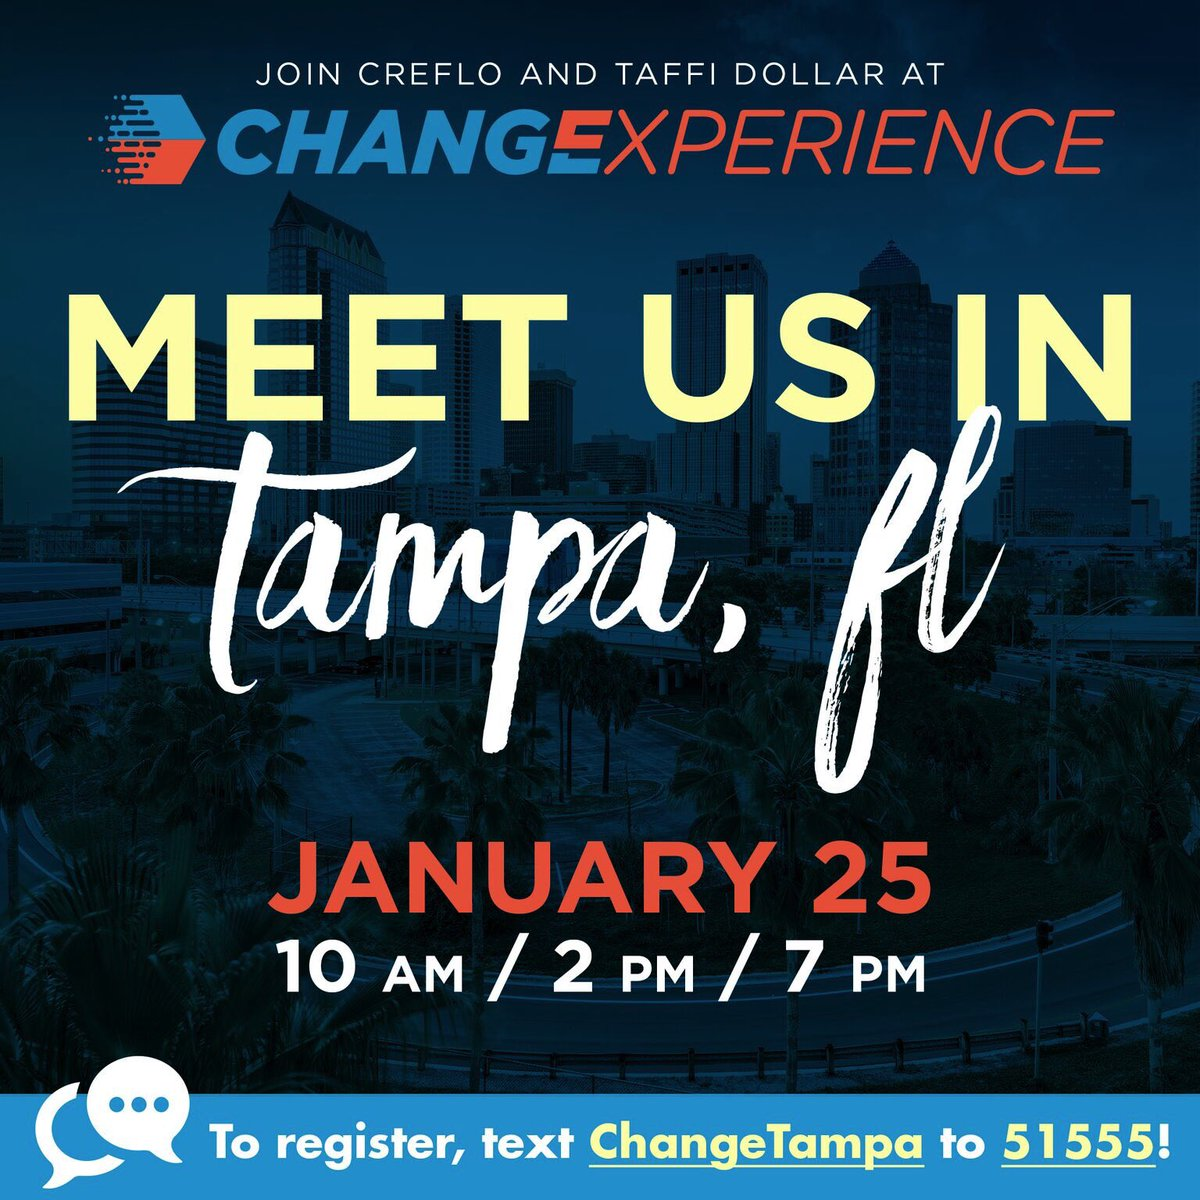 Change Experience 2019 in Tampa, Florida on January 25 is coming up next! This event is free. Don't miss out! Click here to register …https://changeexperience2019tampa.eventbrite.com